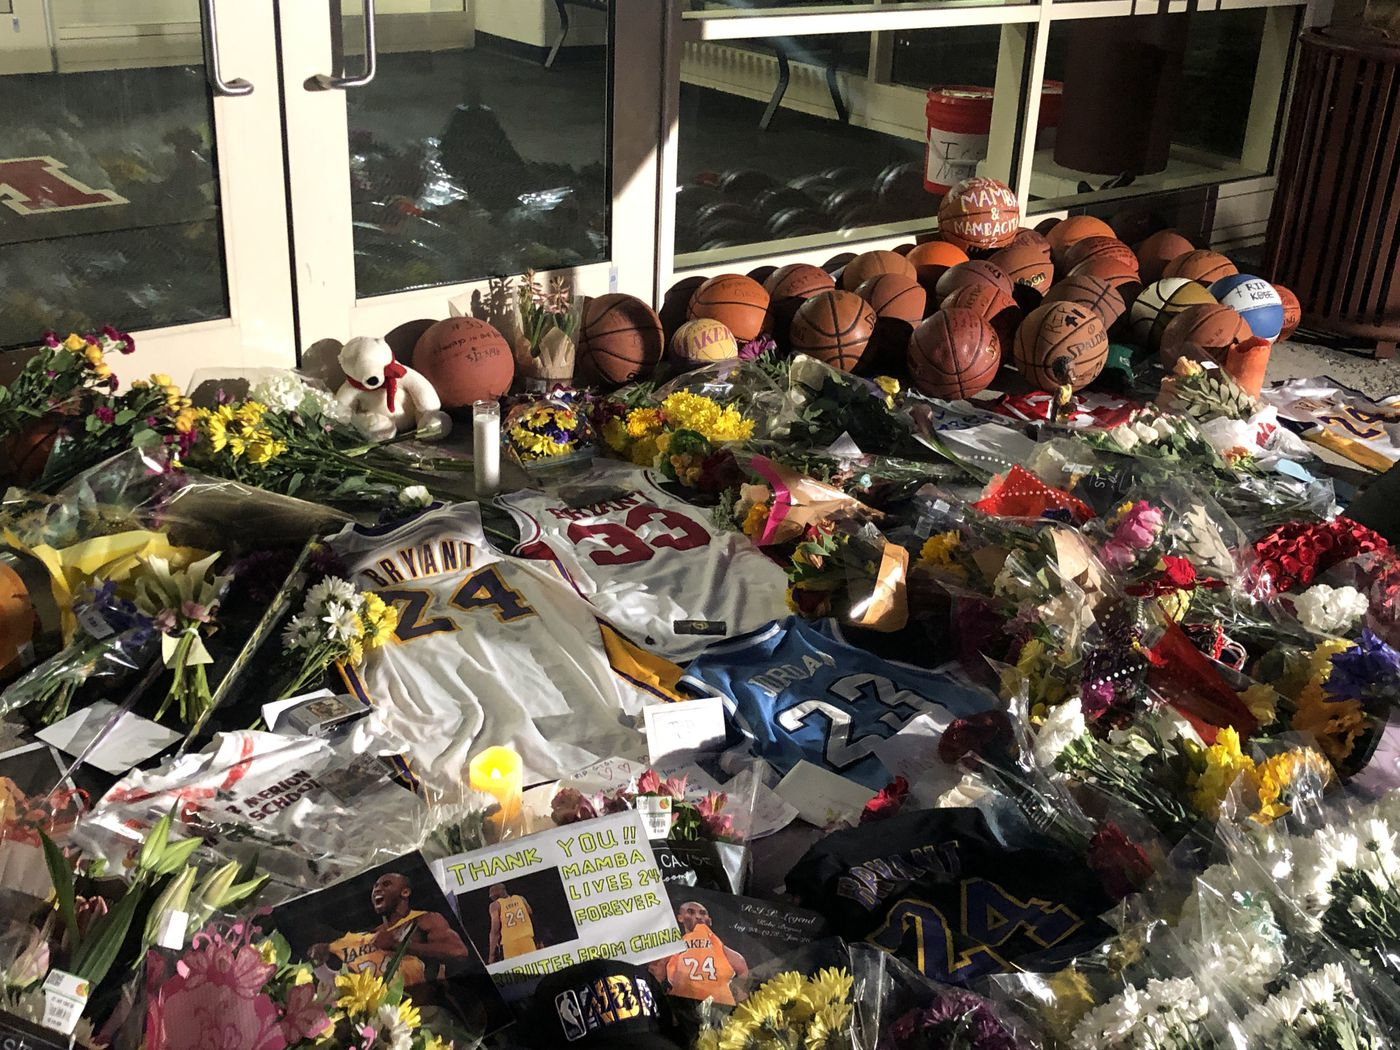 Basketball jerseys lay on the ground amid a pile of items at a makeshift memorial to Kobe Bryant outside the Bryant Gymnasium at Lower Merion High School. Among them: A Kobe Bryant No. 33 Lower Merion High School Jersey. He couldn't wear No. 33 when he played for the Lakers — the number had been retired in honor of Kareem Abdul-Jabbar.